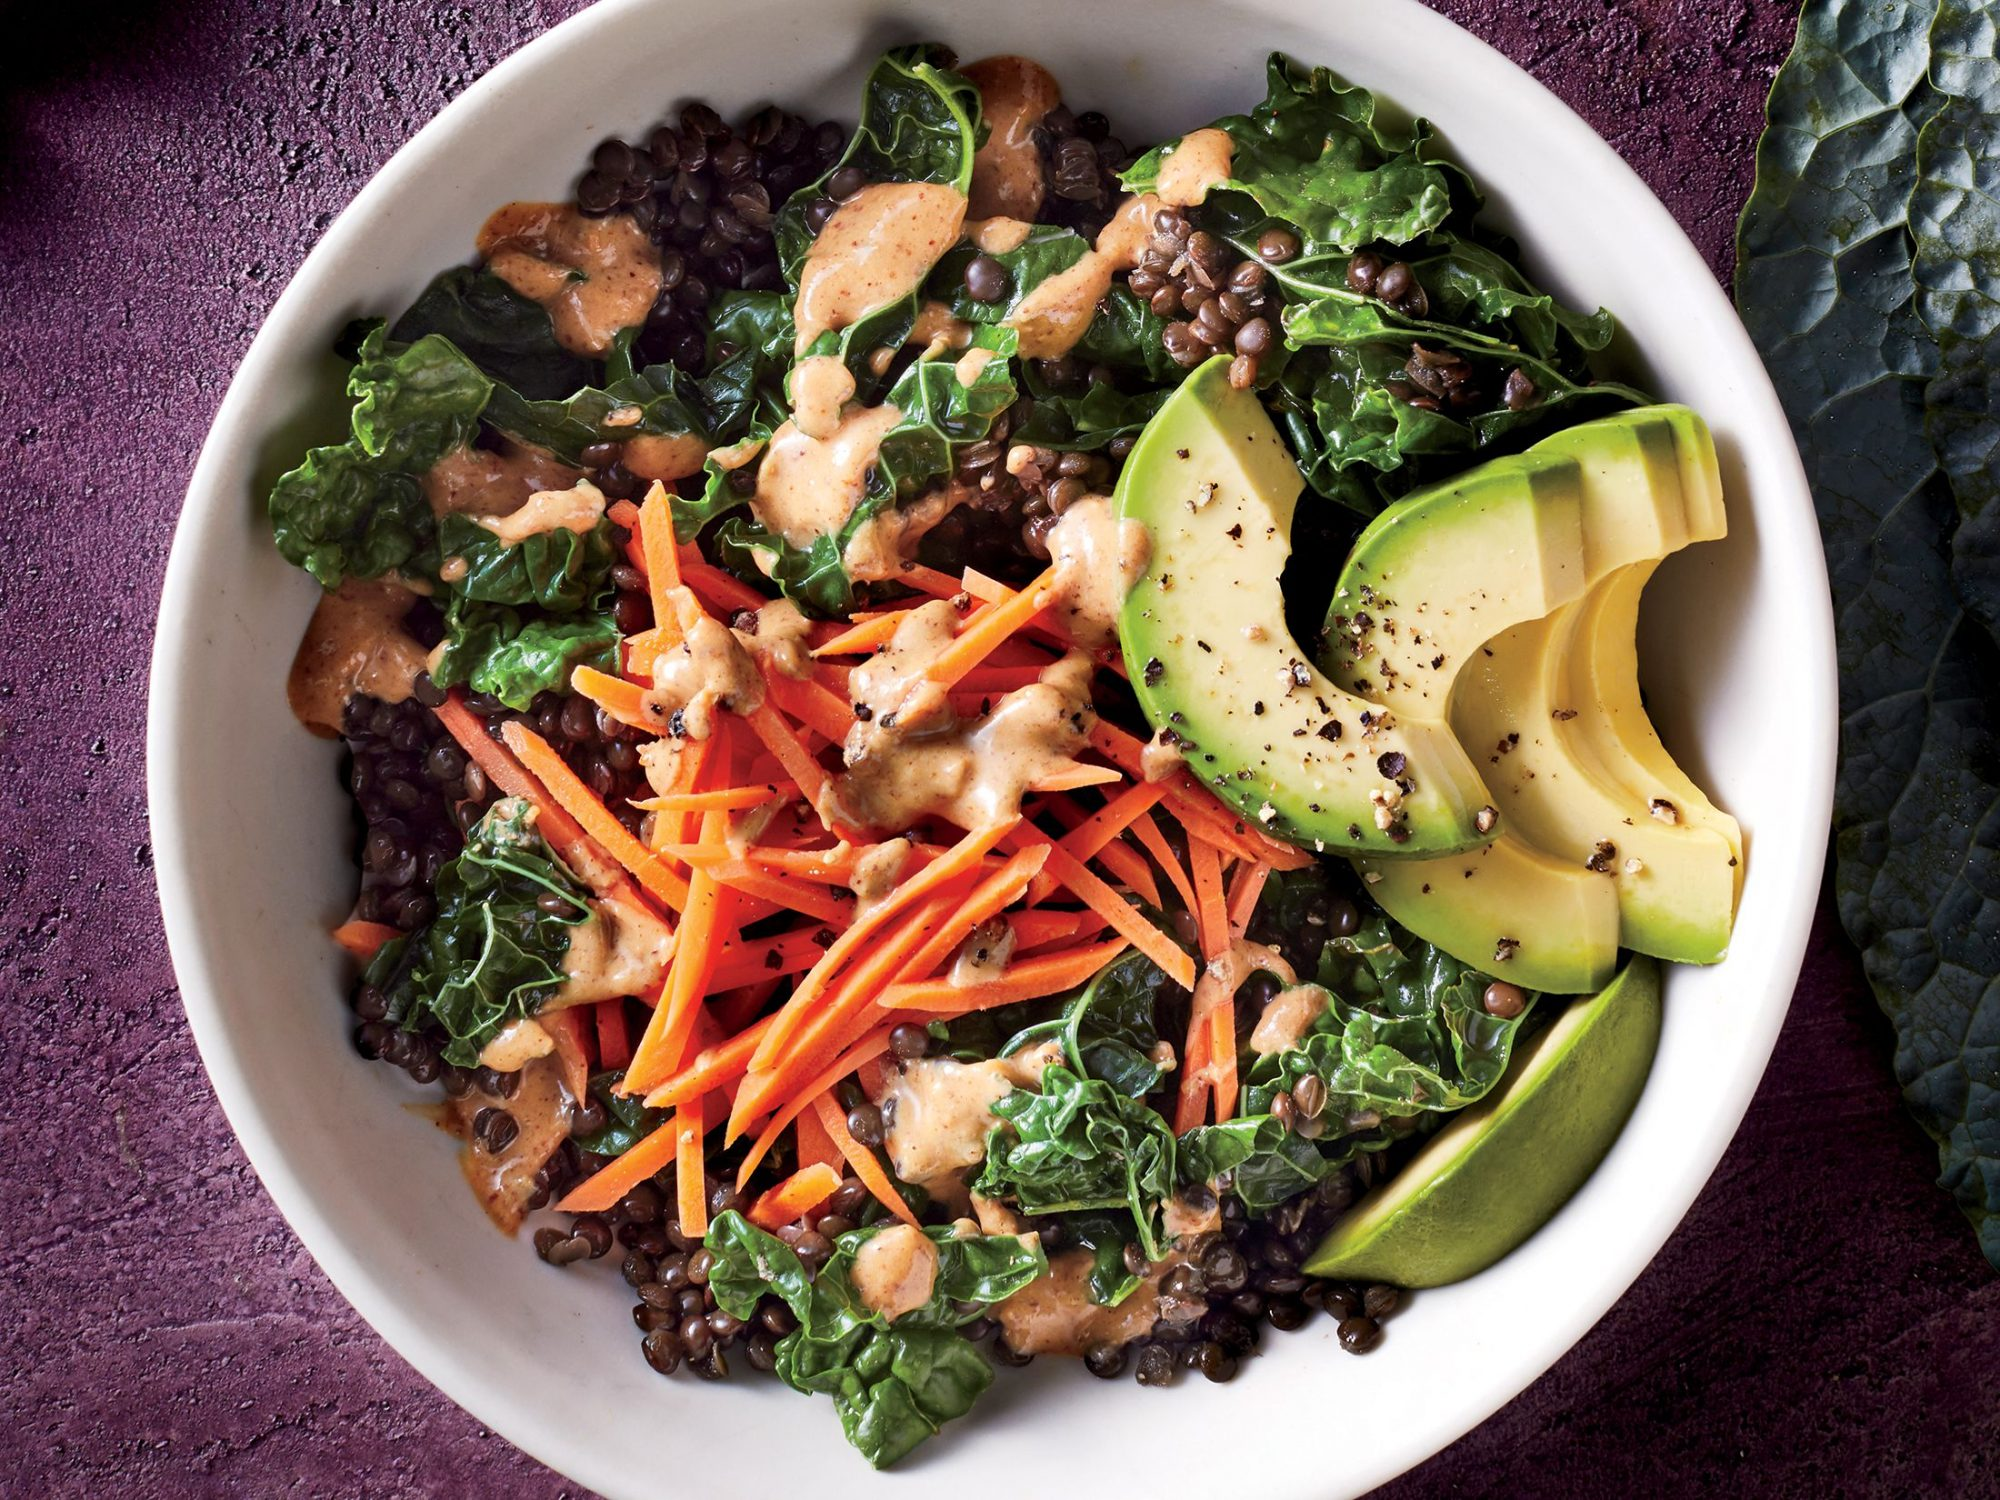 Kale and Lentil Bowl with Thai Almond Sauce